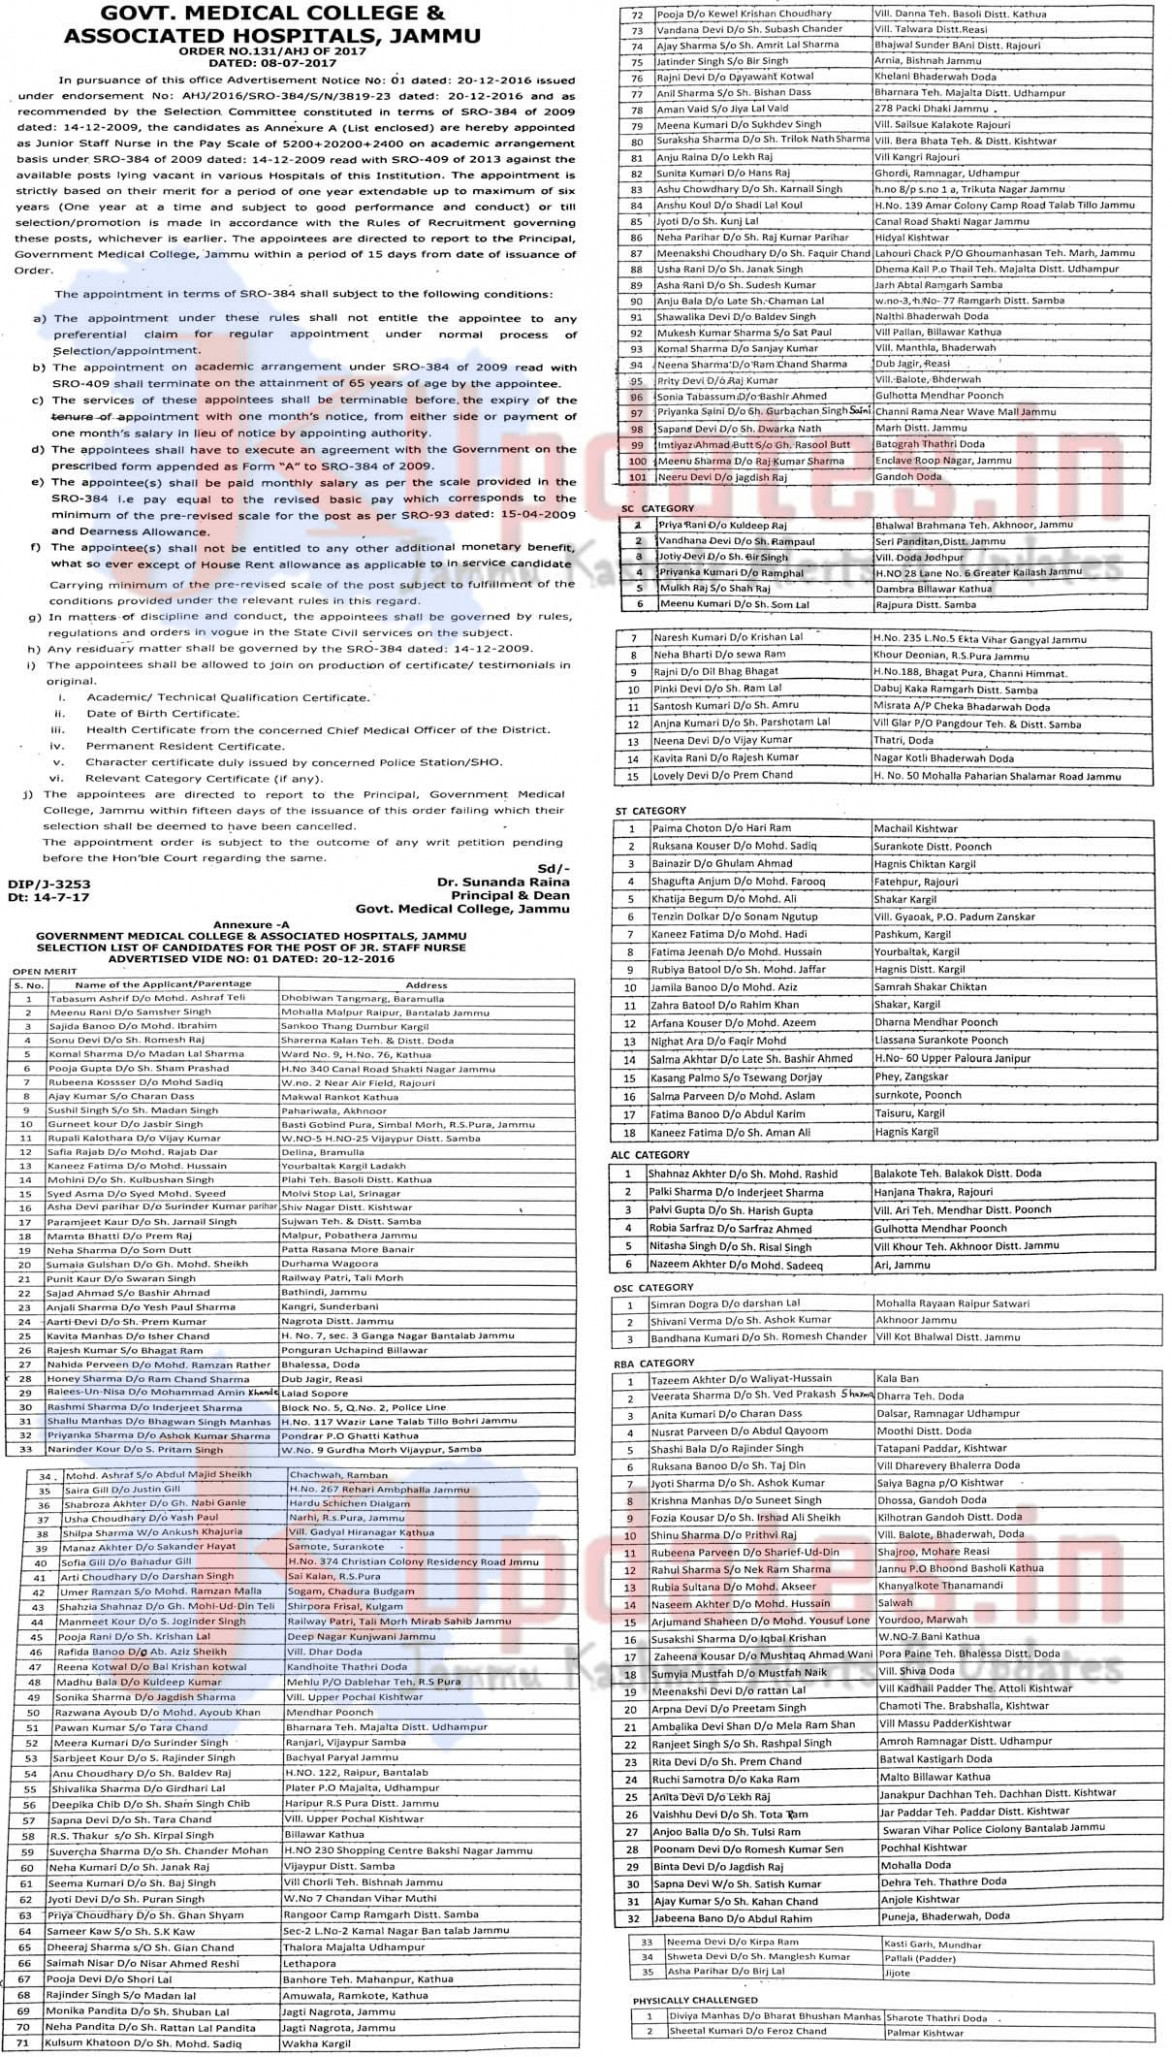 Govt Medical College Jammu (GMC-Jammu) Selection List | Government ...